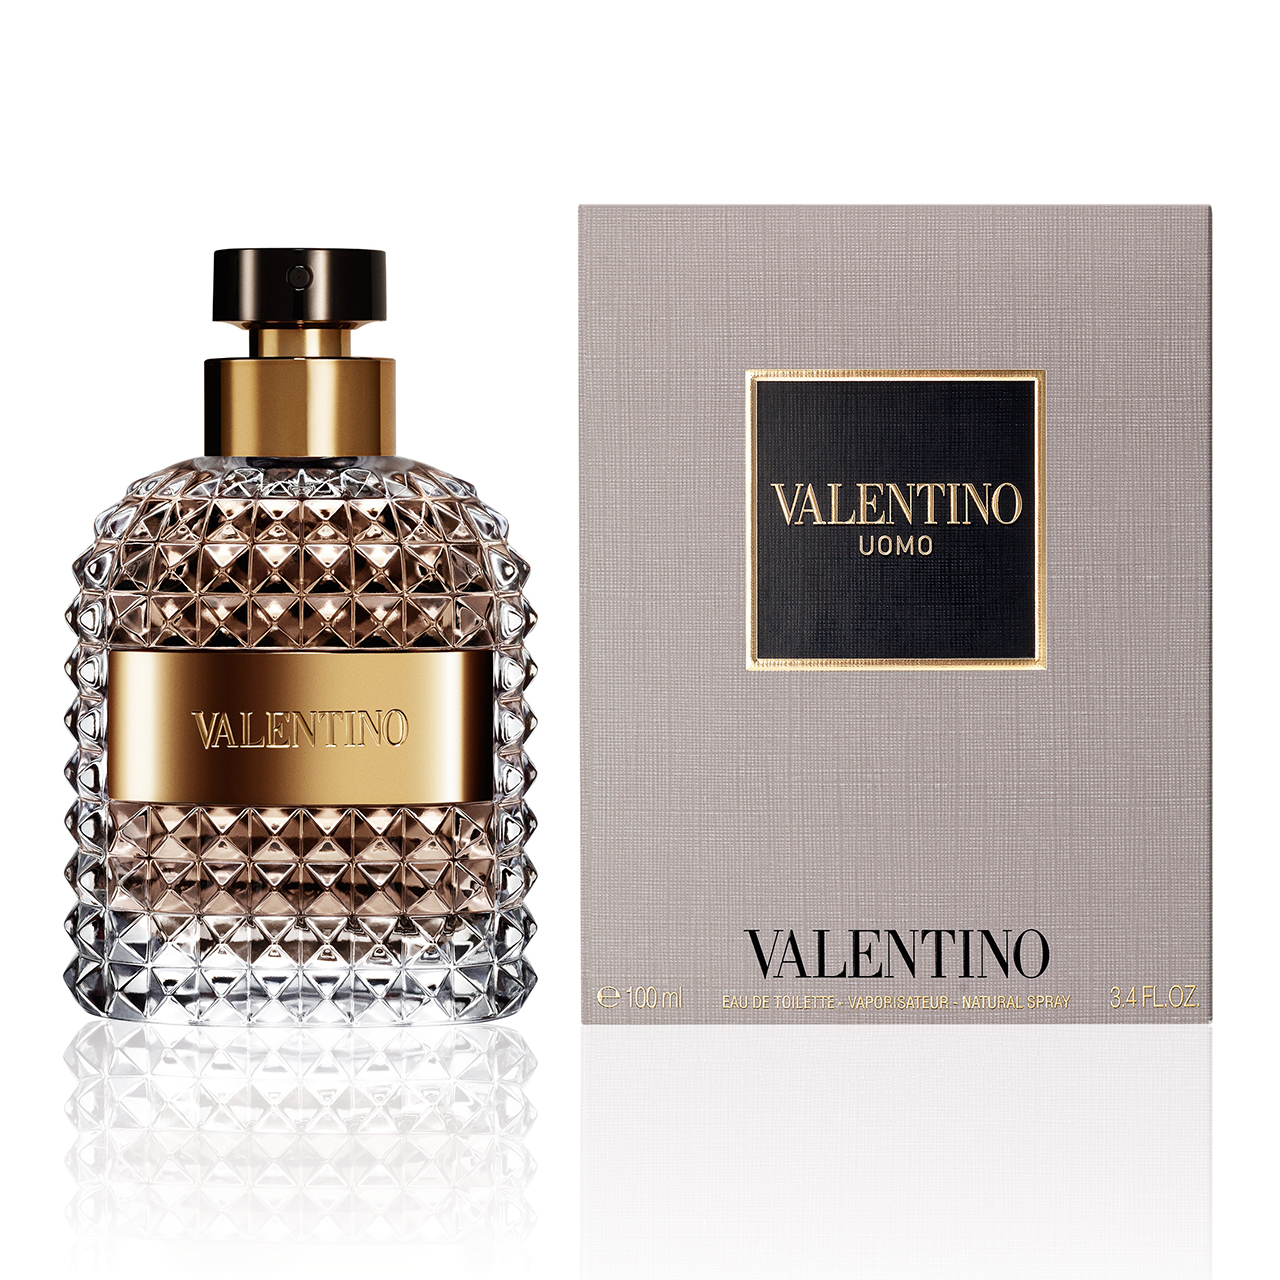 Valentino Uomo EDT 100ml Natural Spray